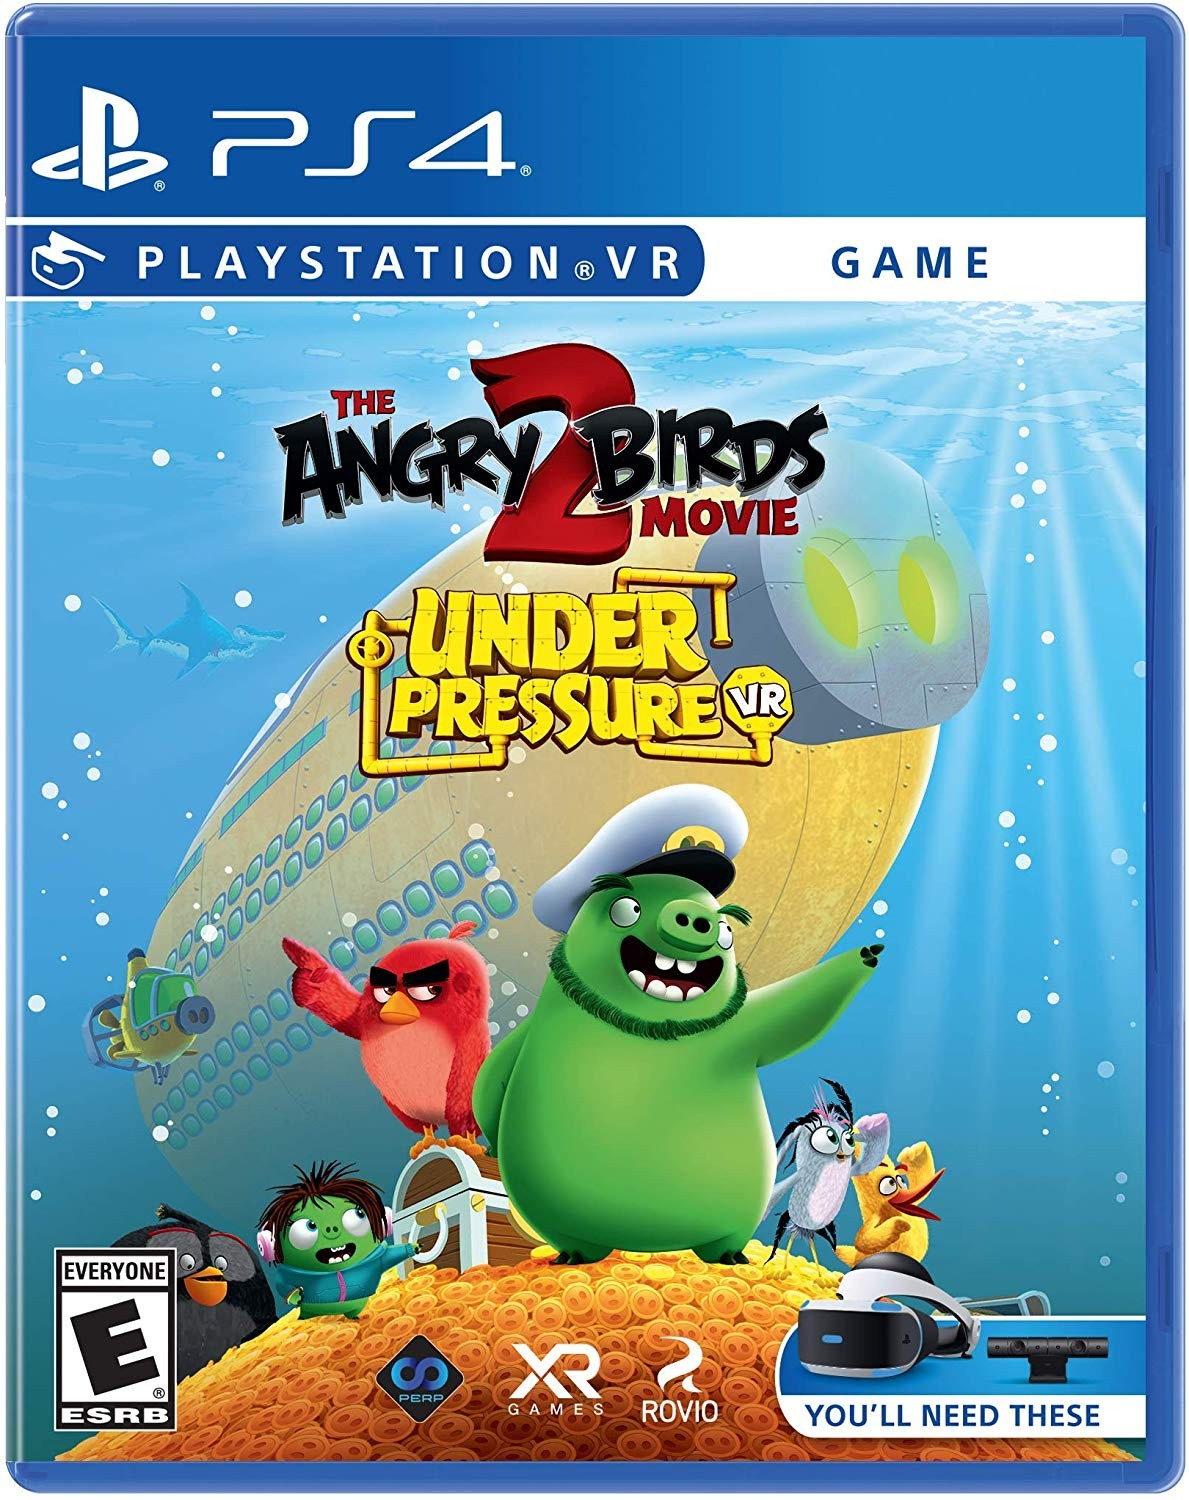 The Angry Birds Movie 2 VR: Under Pressure VR PS4